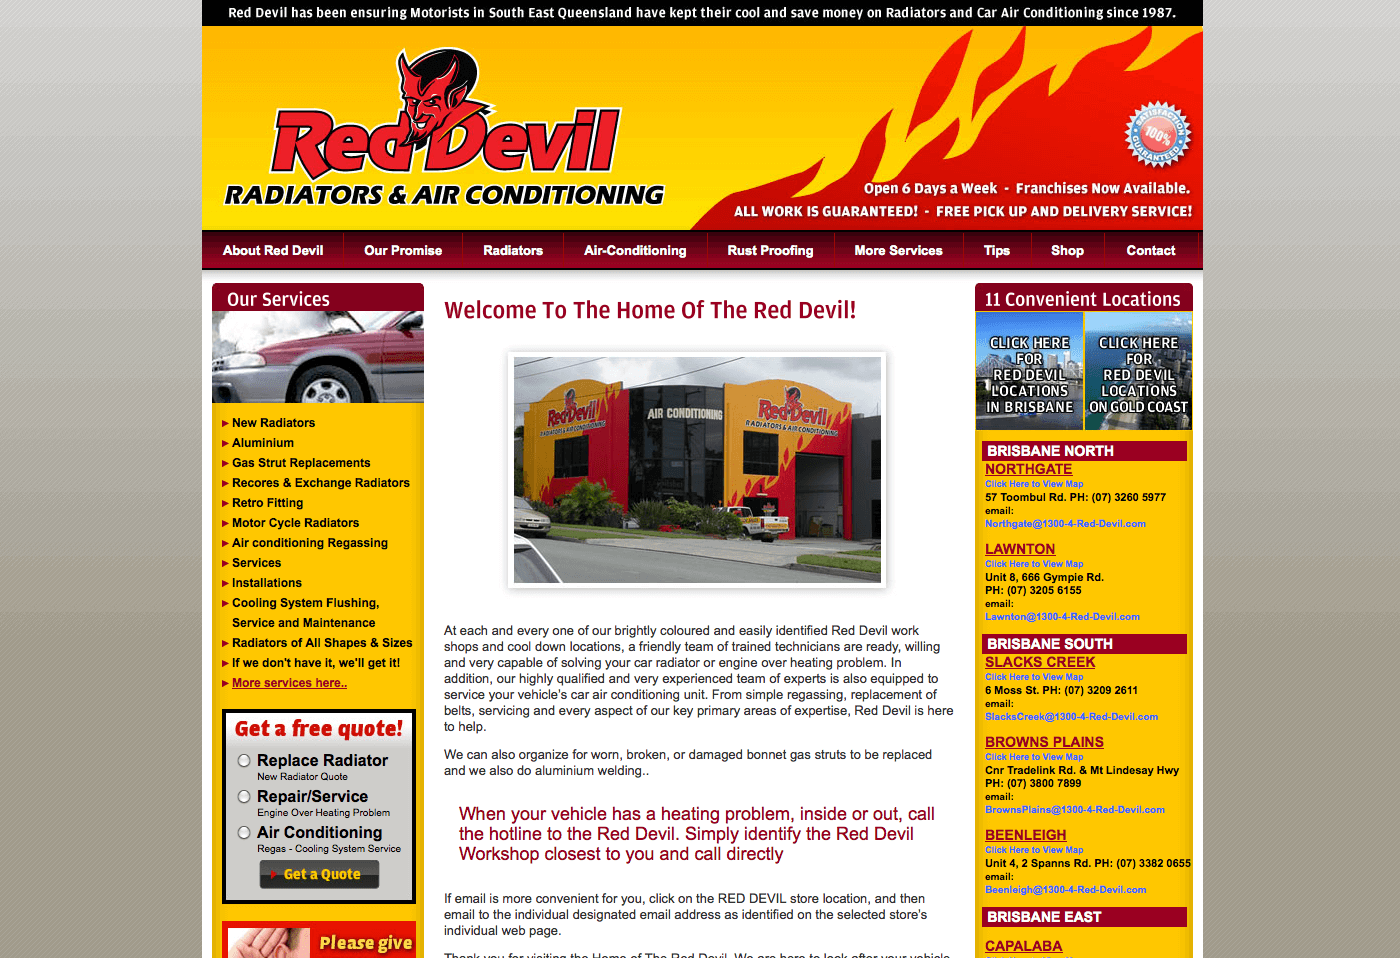 Able Video Red Devil Radiators & Air Conditioning Website